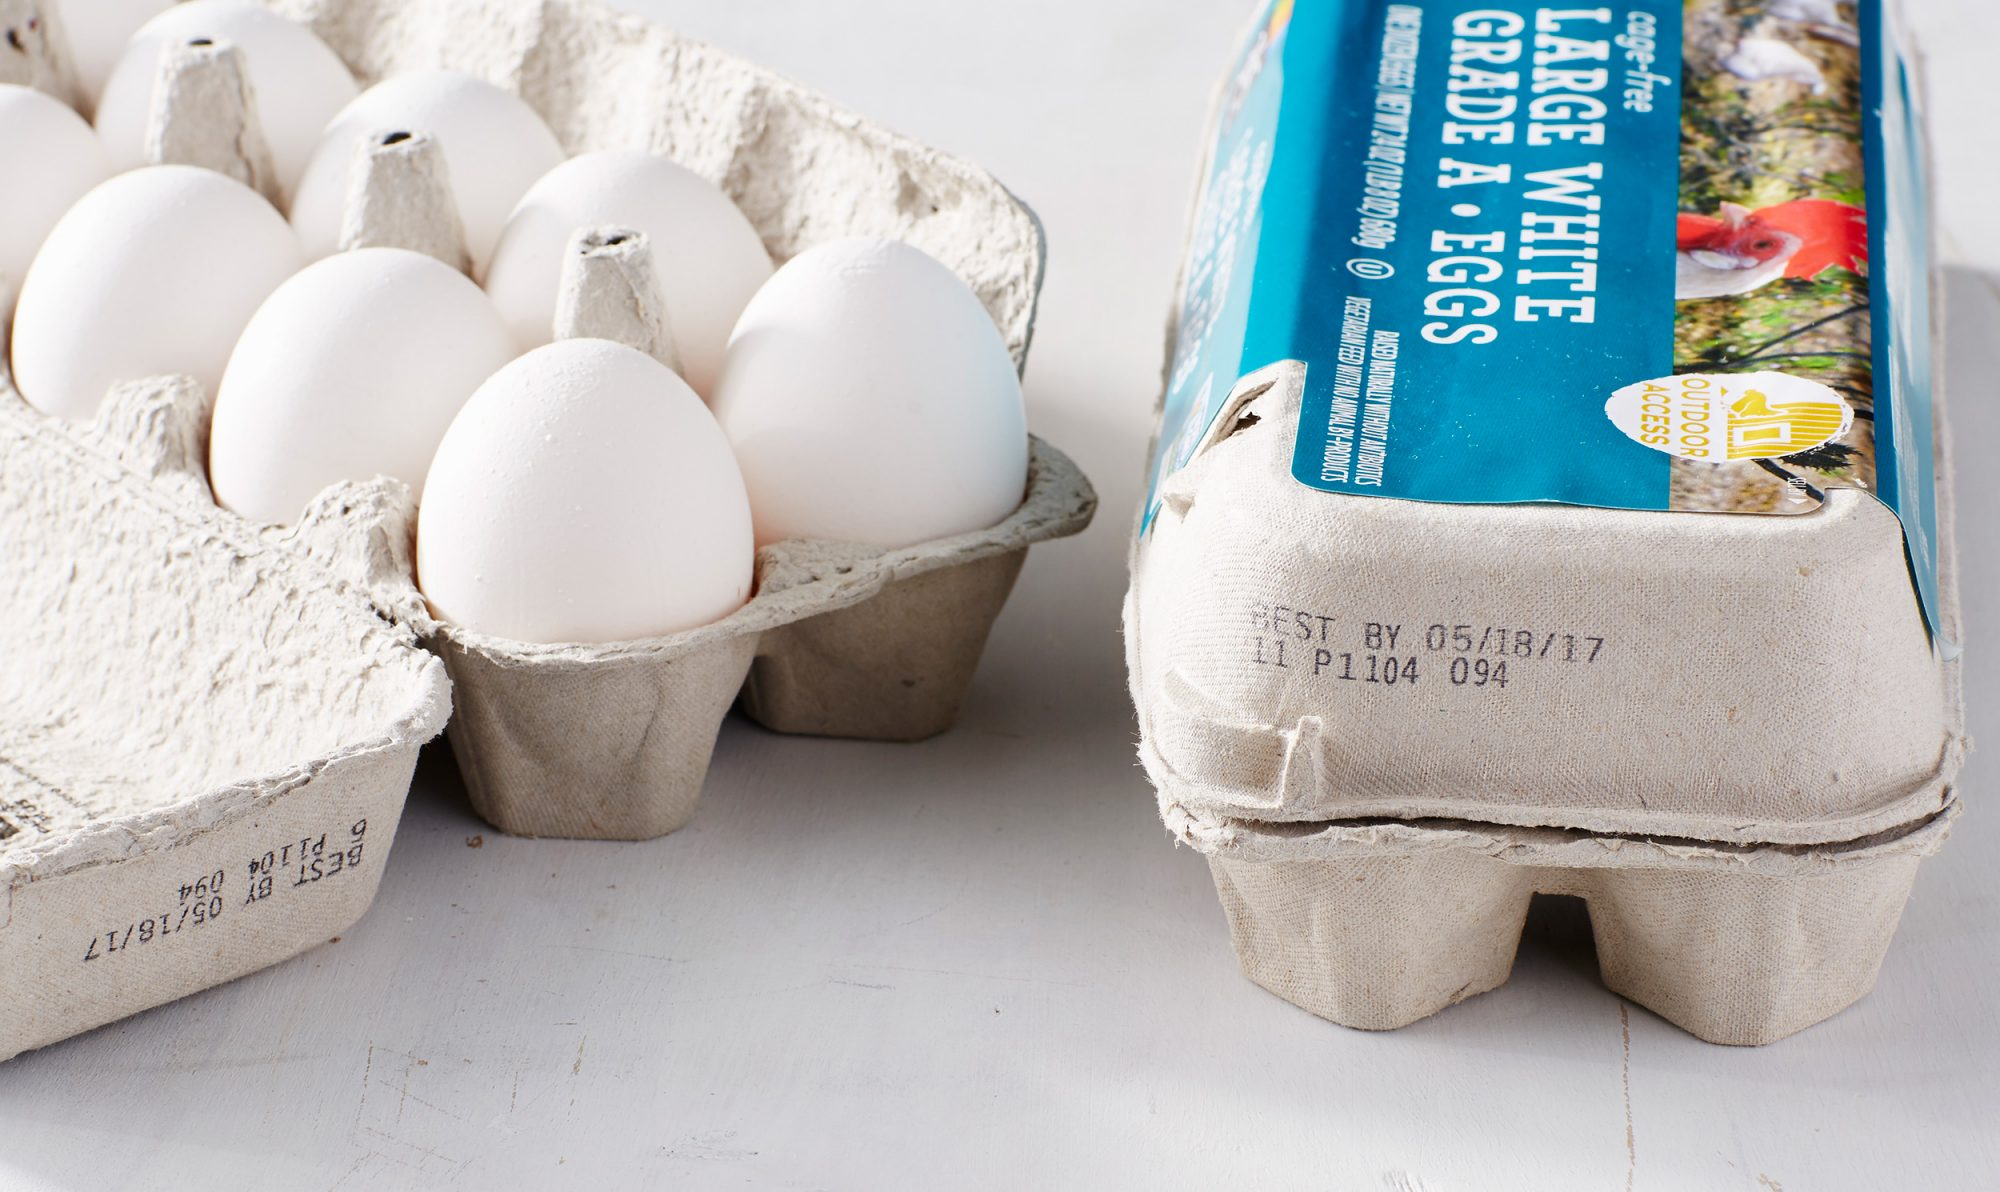 How long do eggs last after expiration date in Brisbane